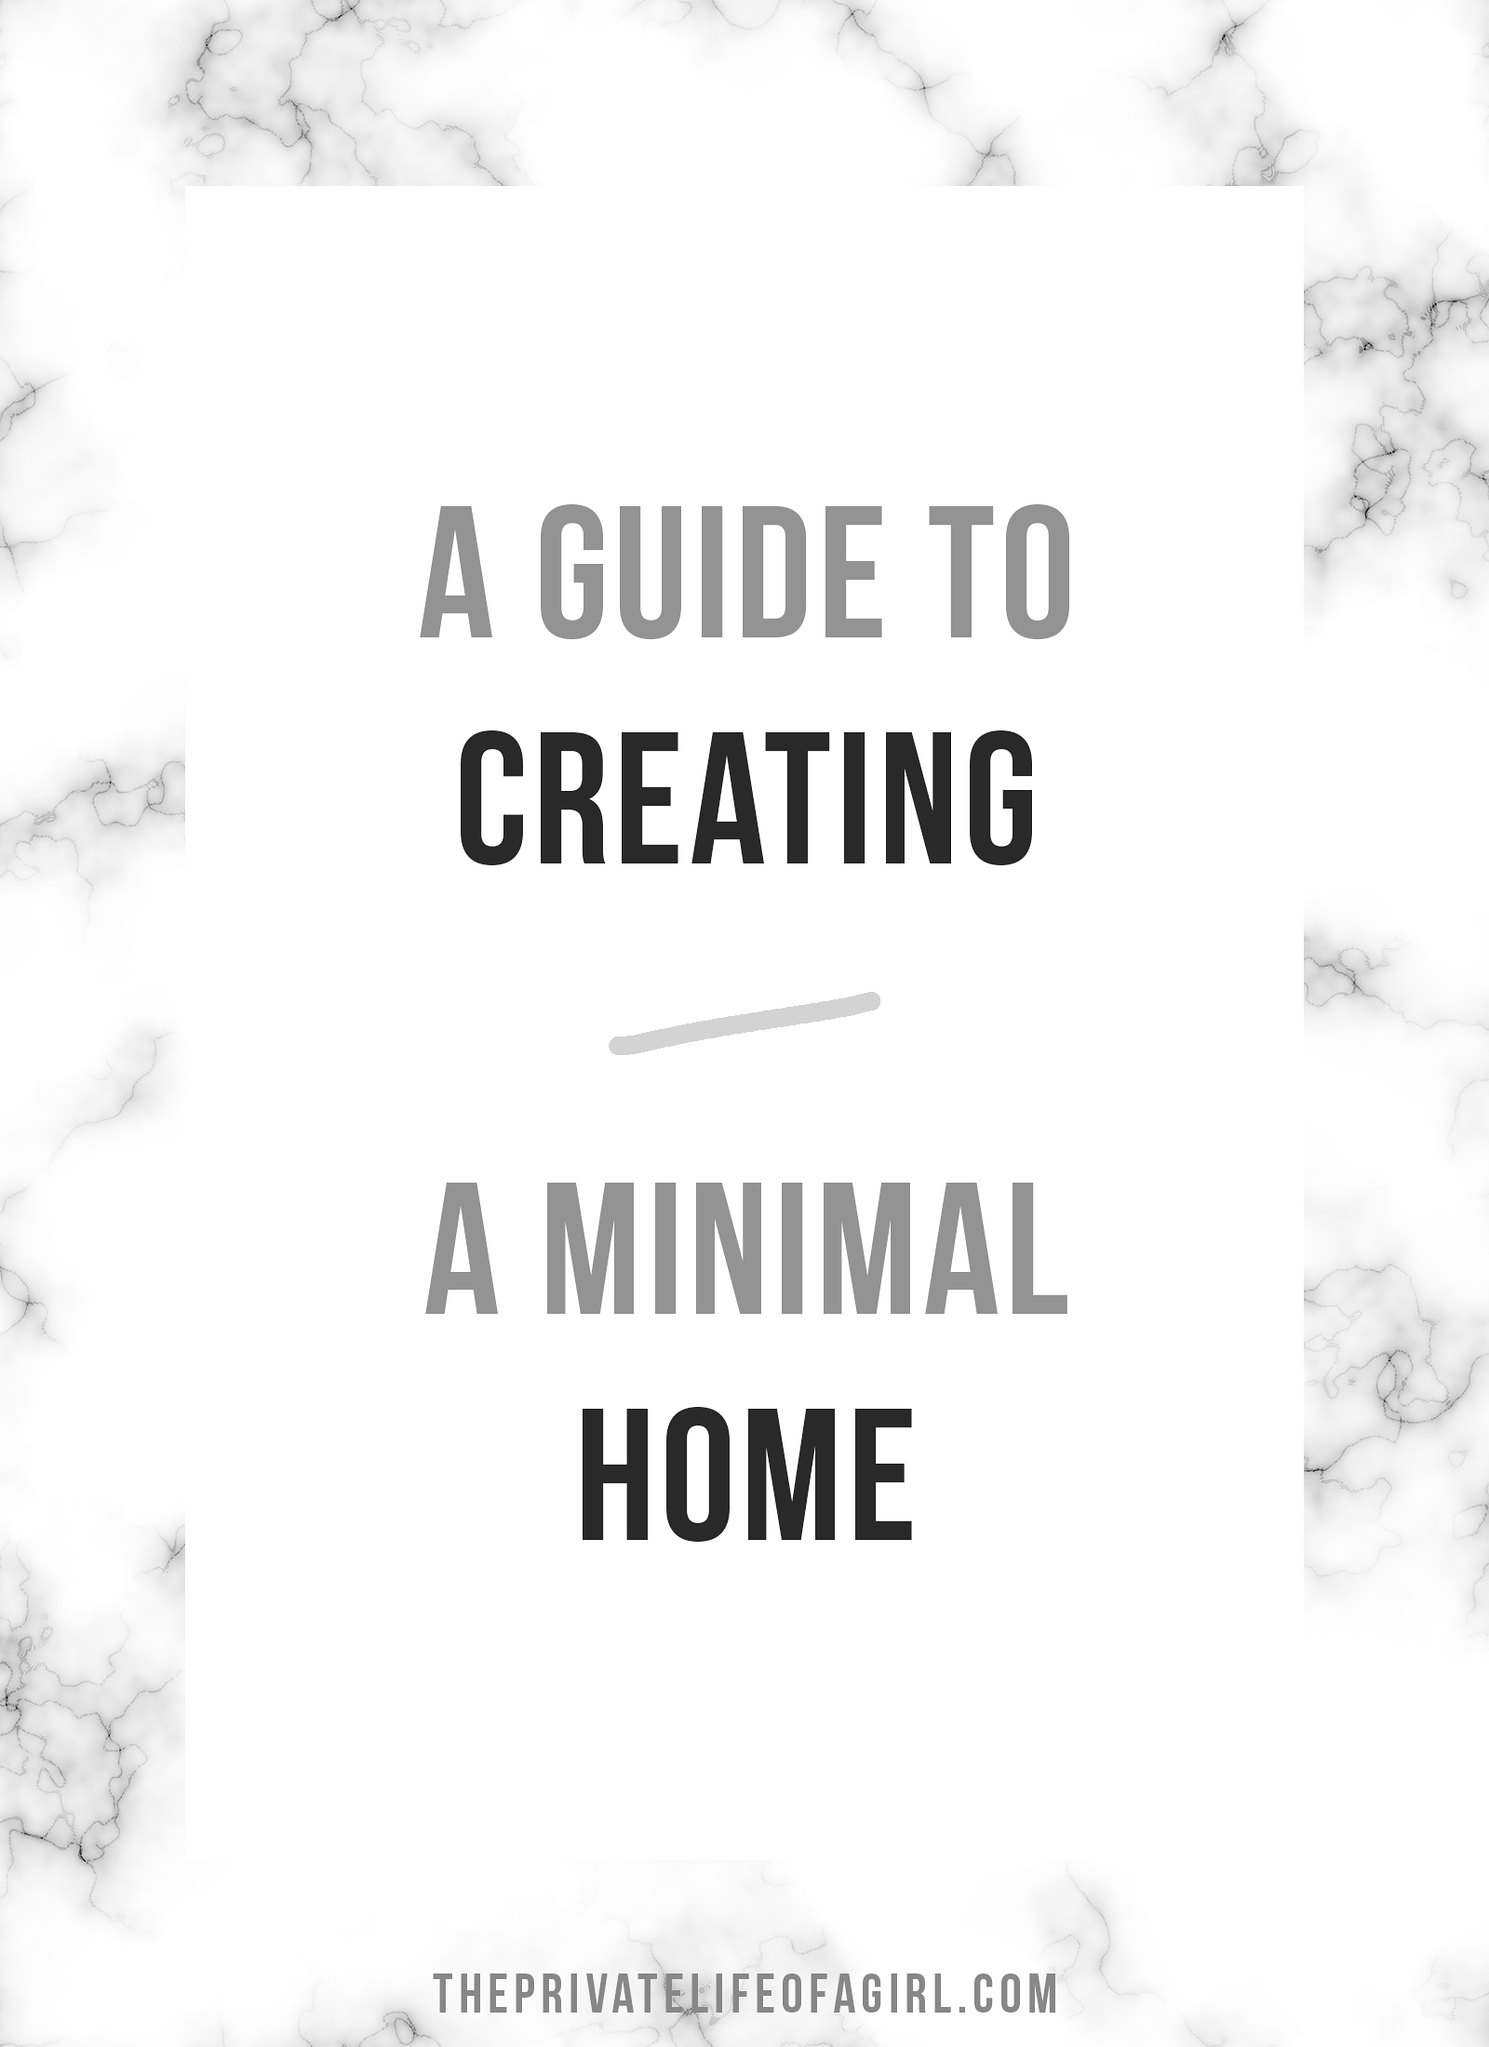 A Guide To Creating A Minimal Home